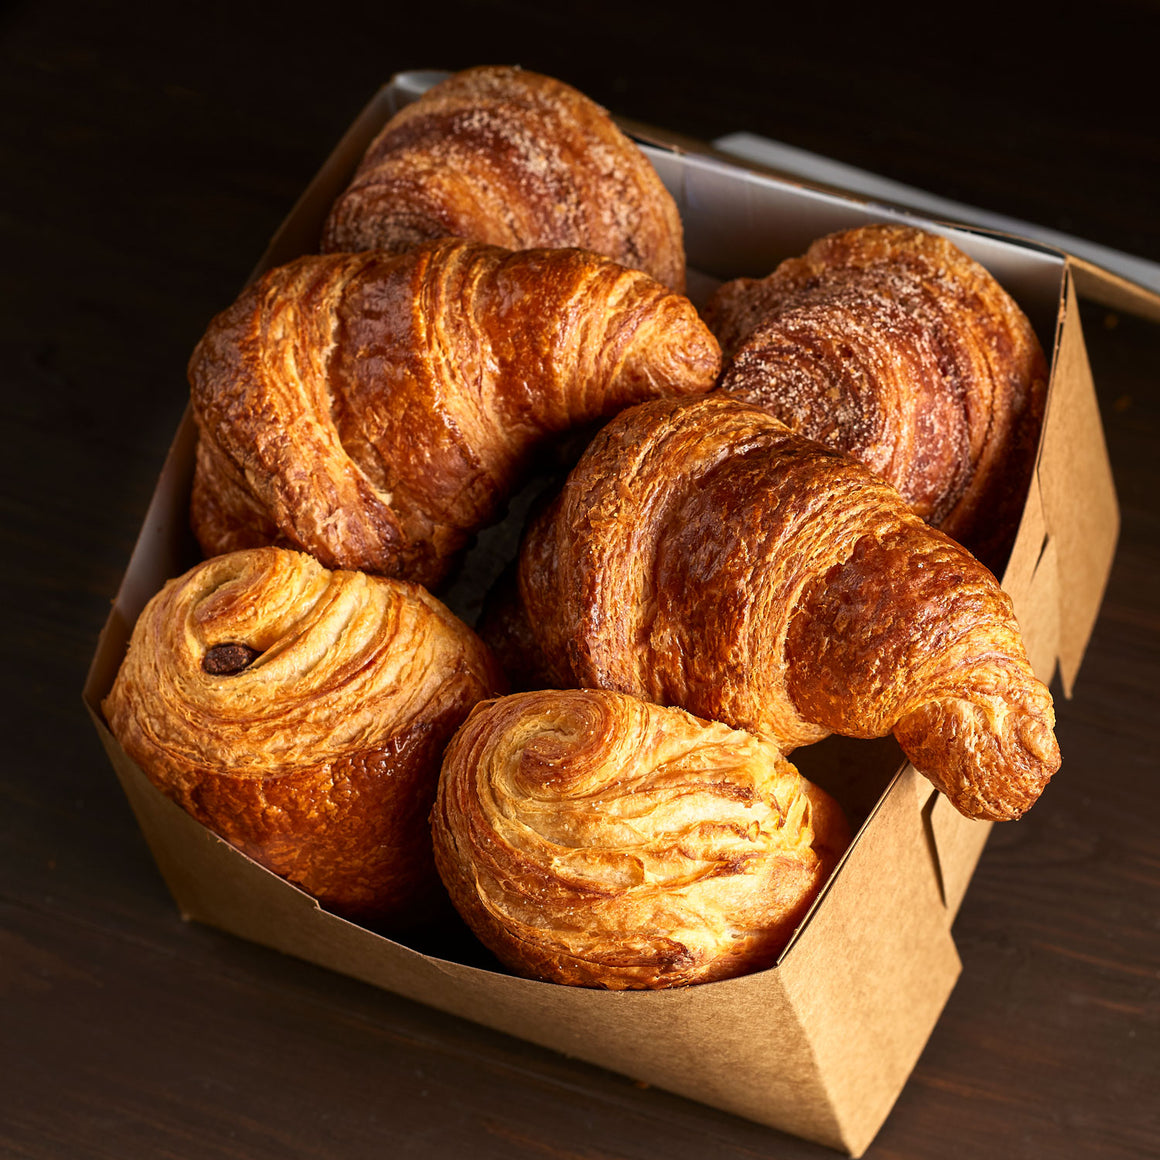 Box of Assorted Pastries - 6 Pieces